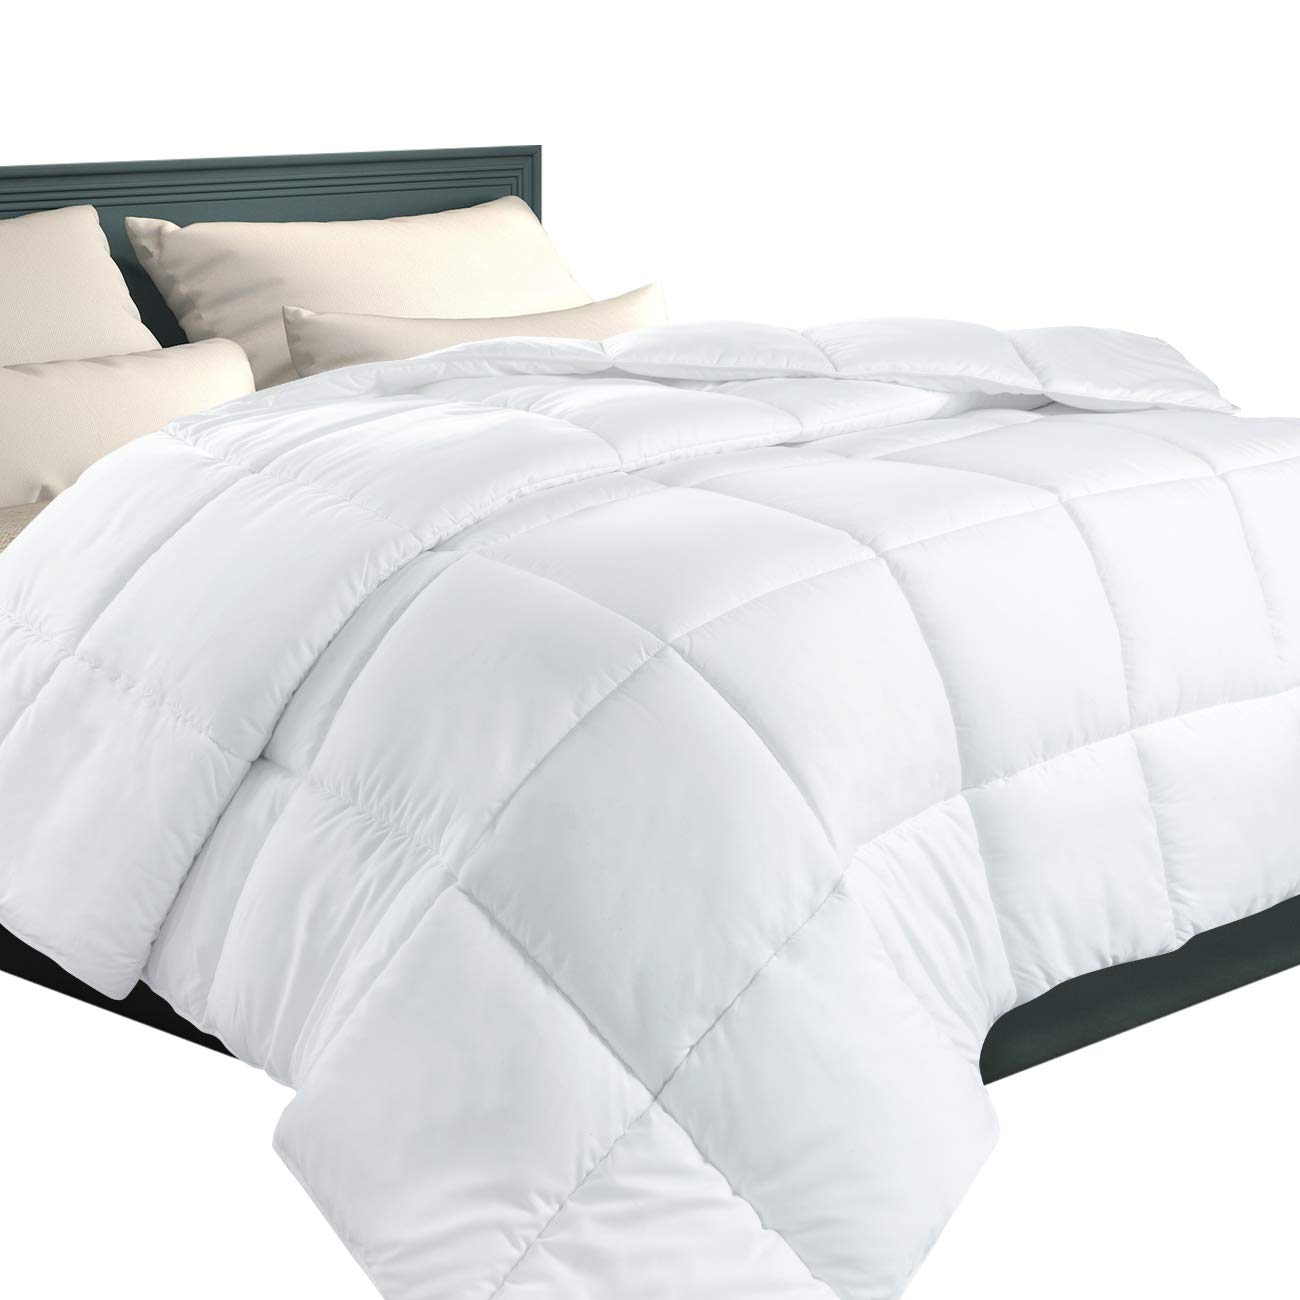 EcoMozz King Comforter with Corner Tabs - All Season Down Alternative Comforter - Soft Warm Quilted Duvet Insert - Hypoallergenic Fluffy Hotel Collection - White